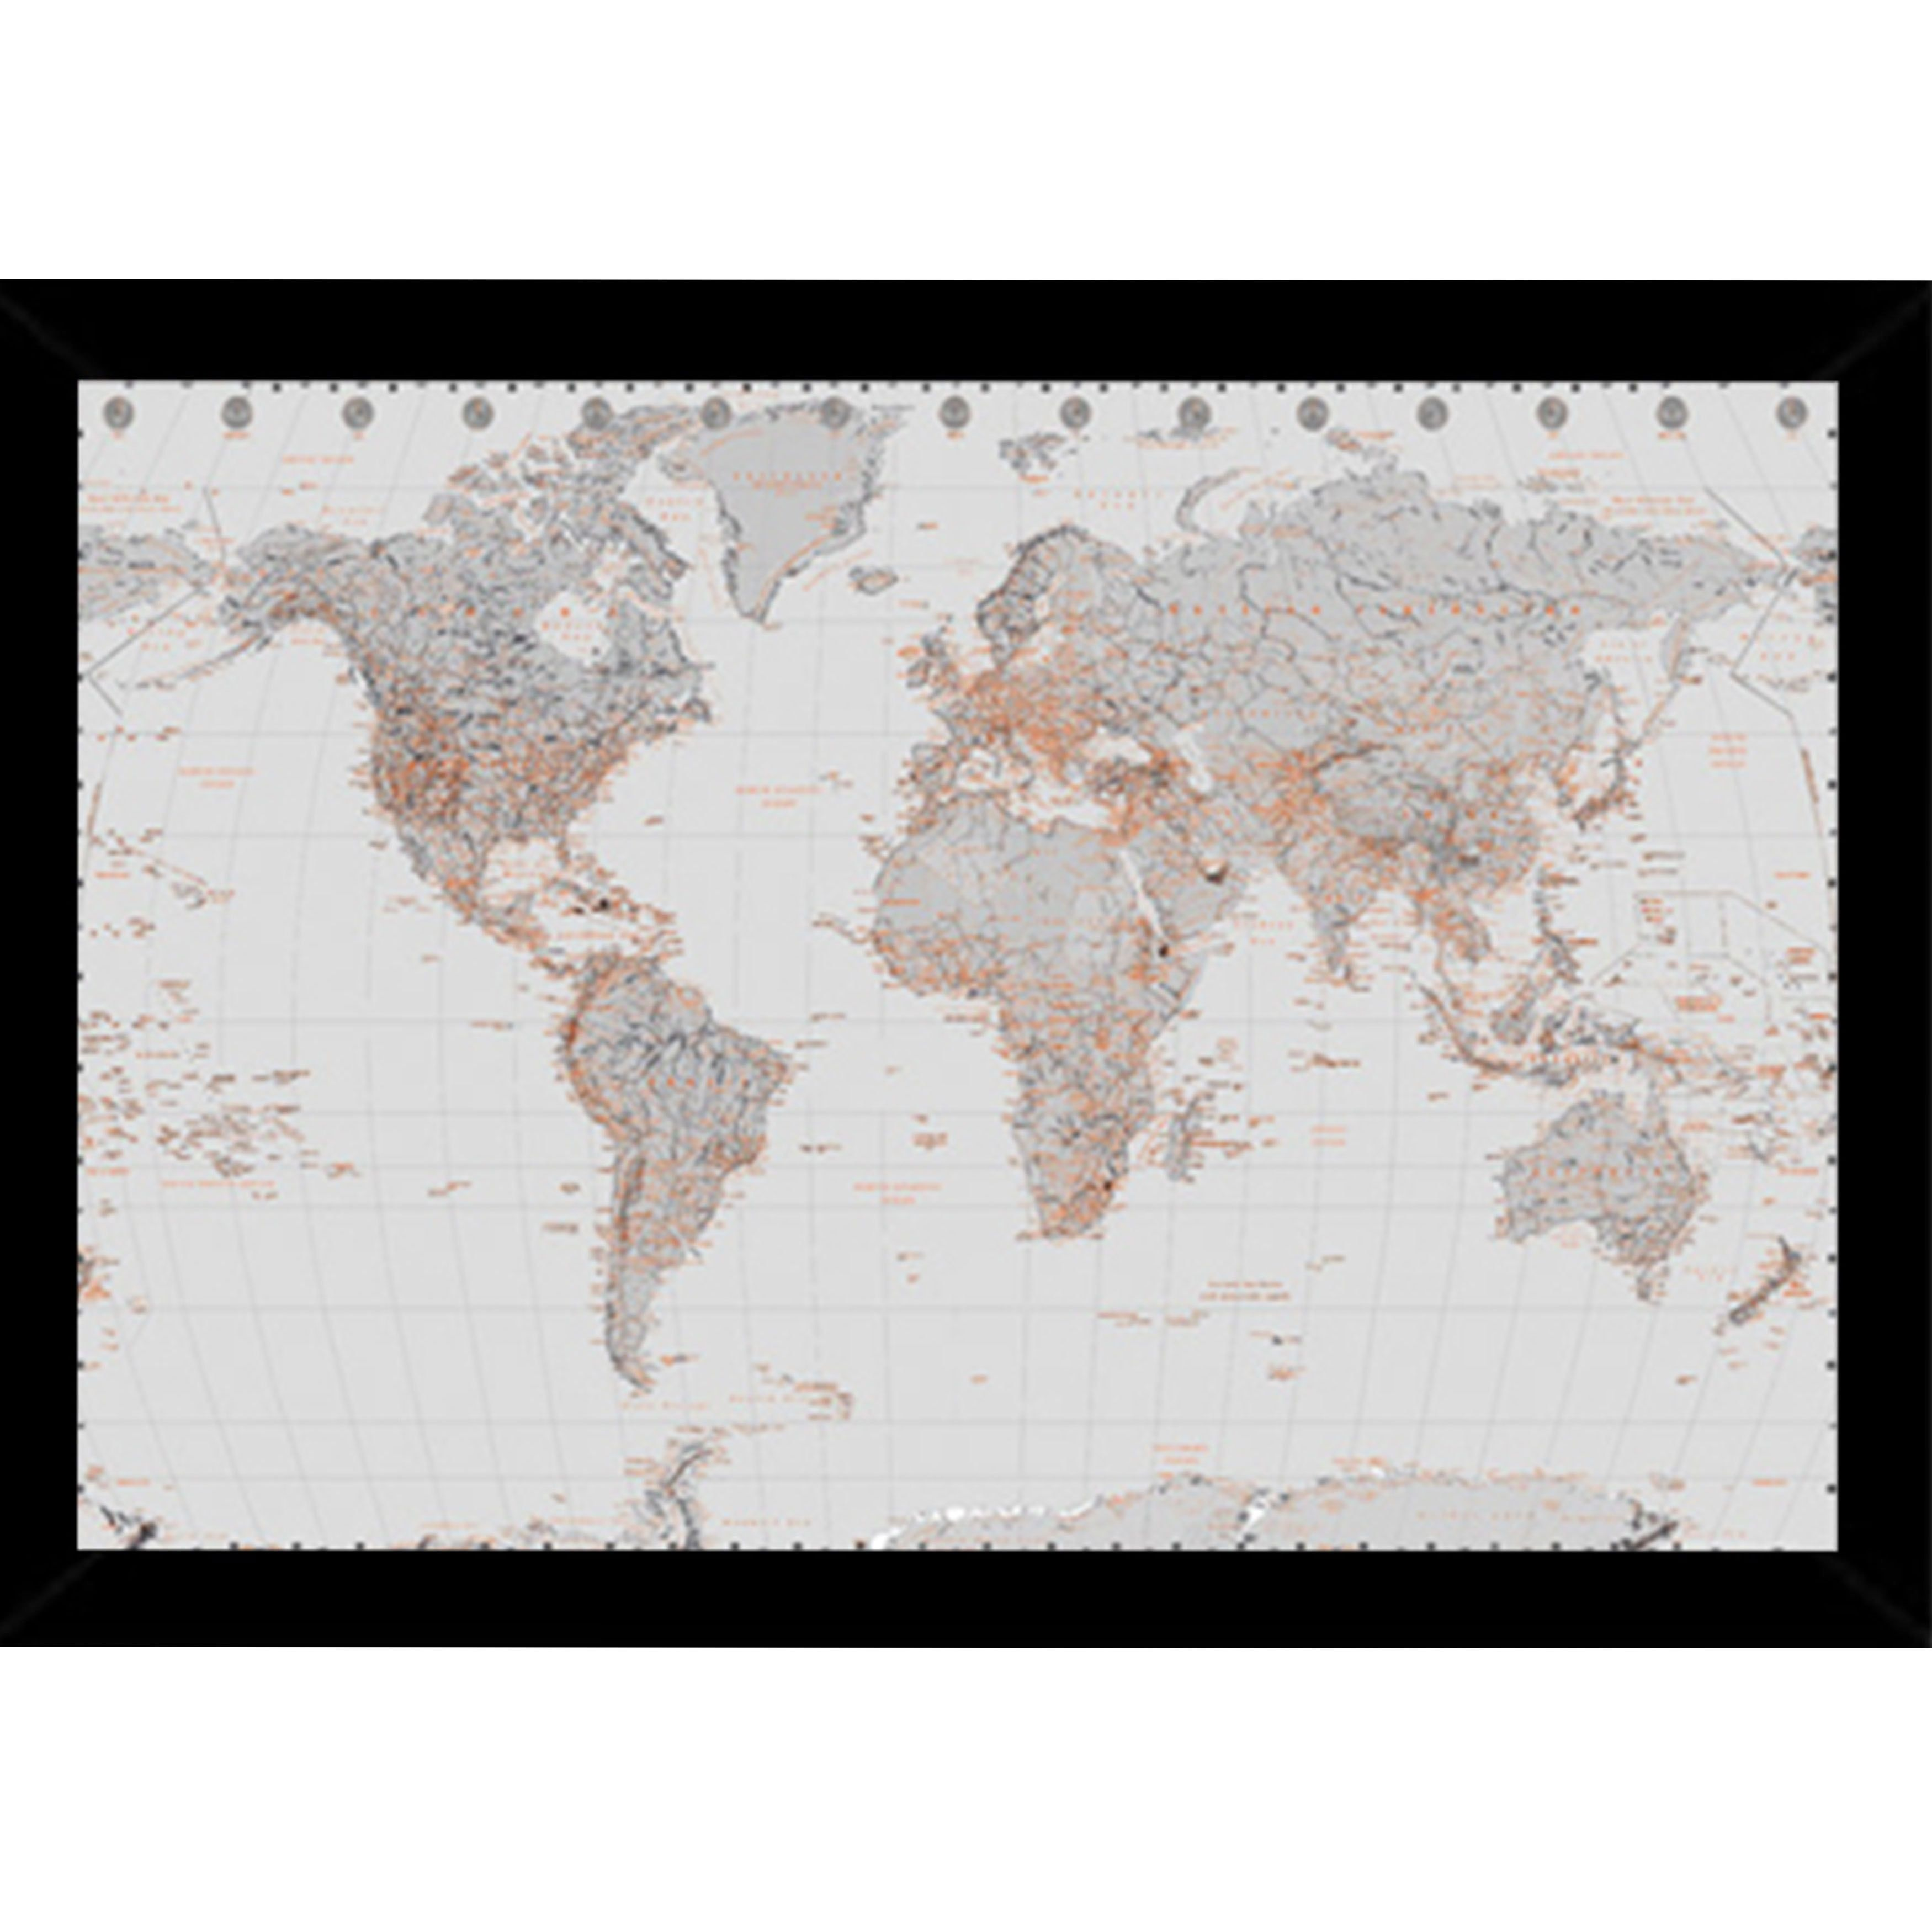 World map silver print 24 inch x 36 inch with contemporary world map silver print 24 inch x 36 inch with contemporary poster gumiabroncs Gallery